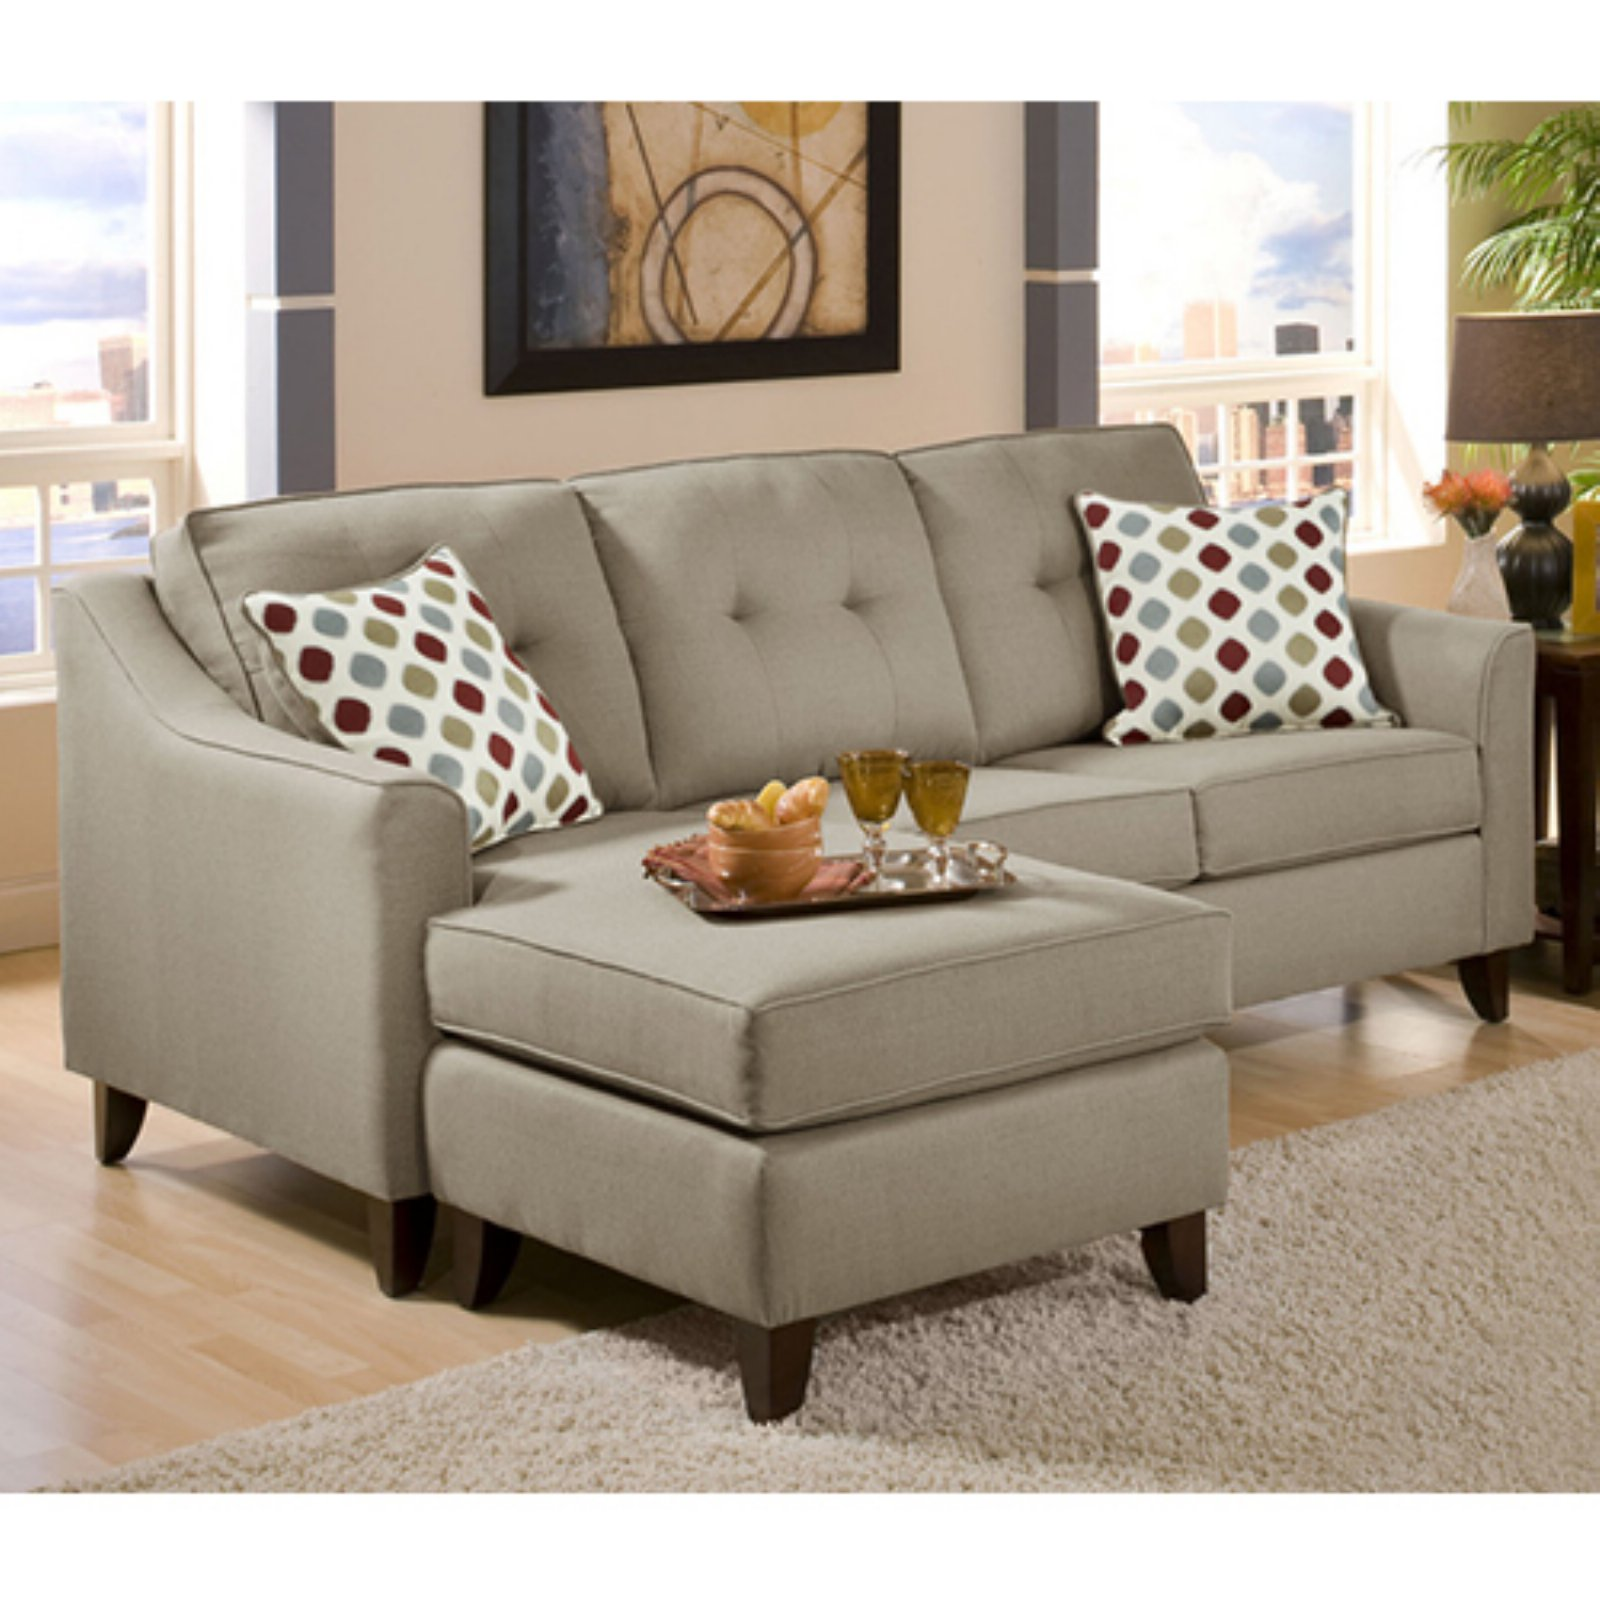 : room and board chelsea sectional - Sectionals, Sofas & Couches